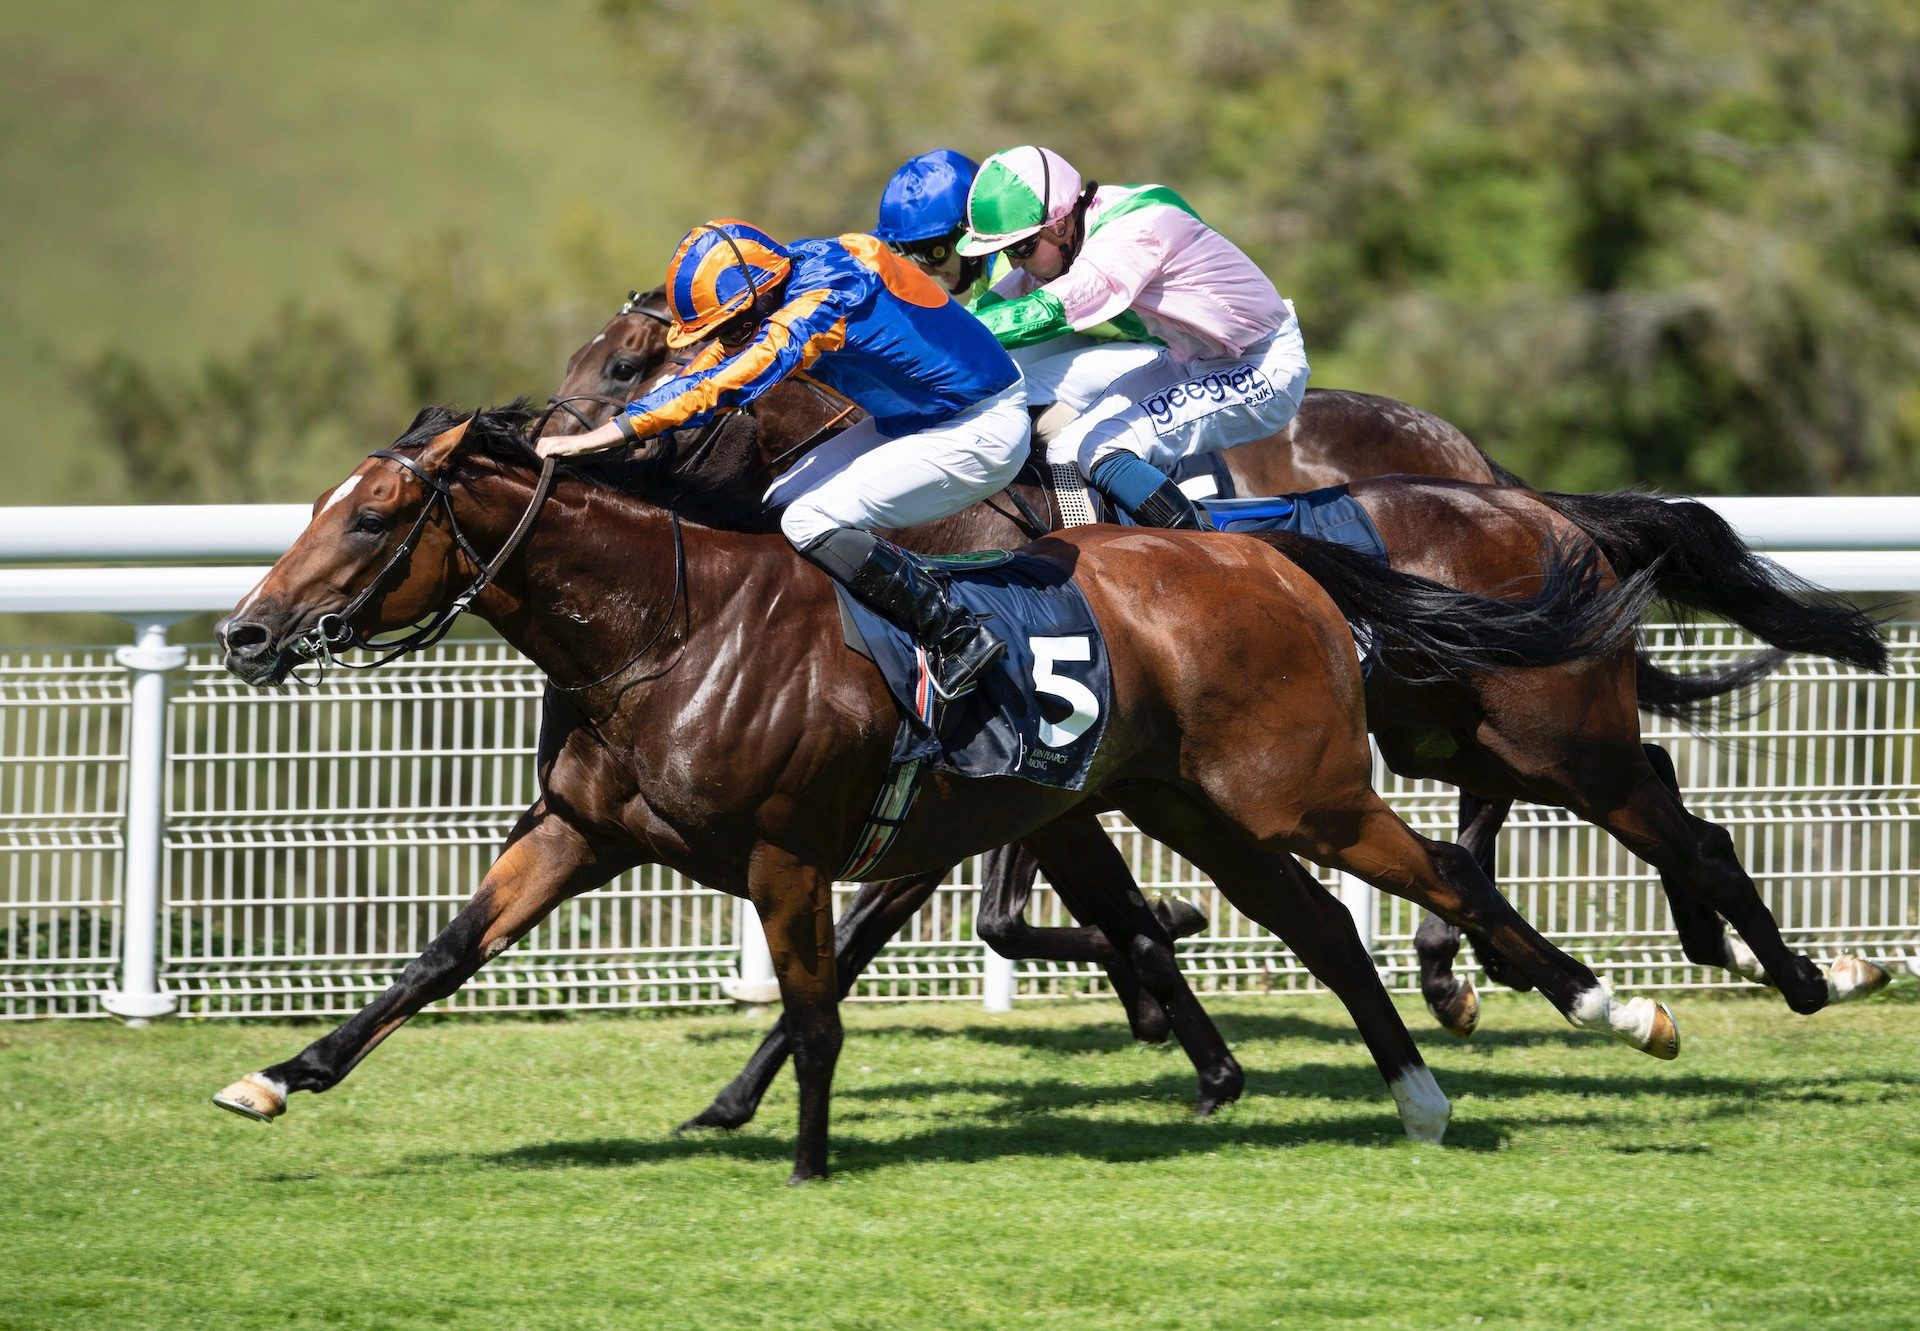 Mogul (Galileo) Wins The Gr.3 Gordon Stakes at Goodwood